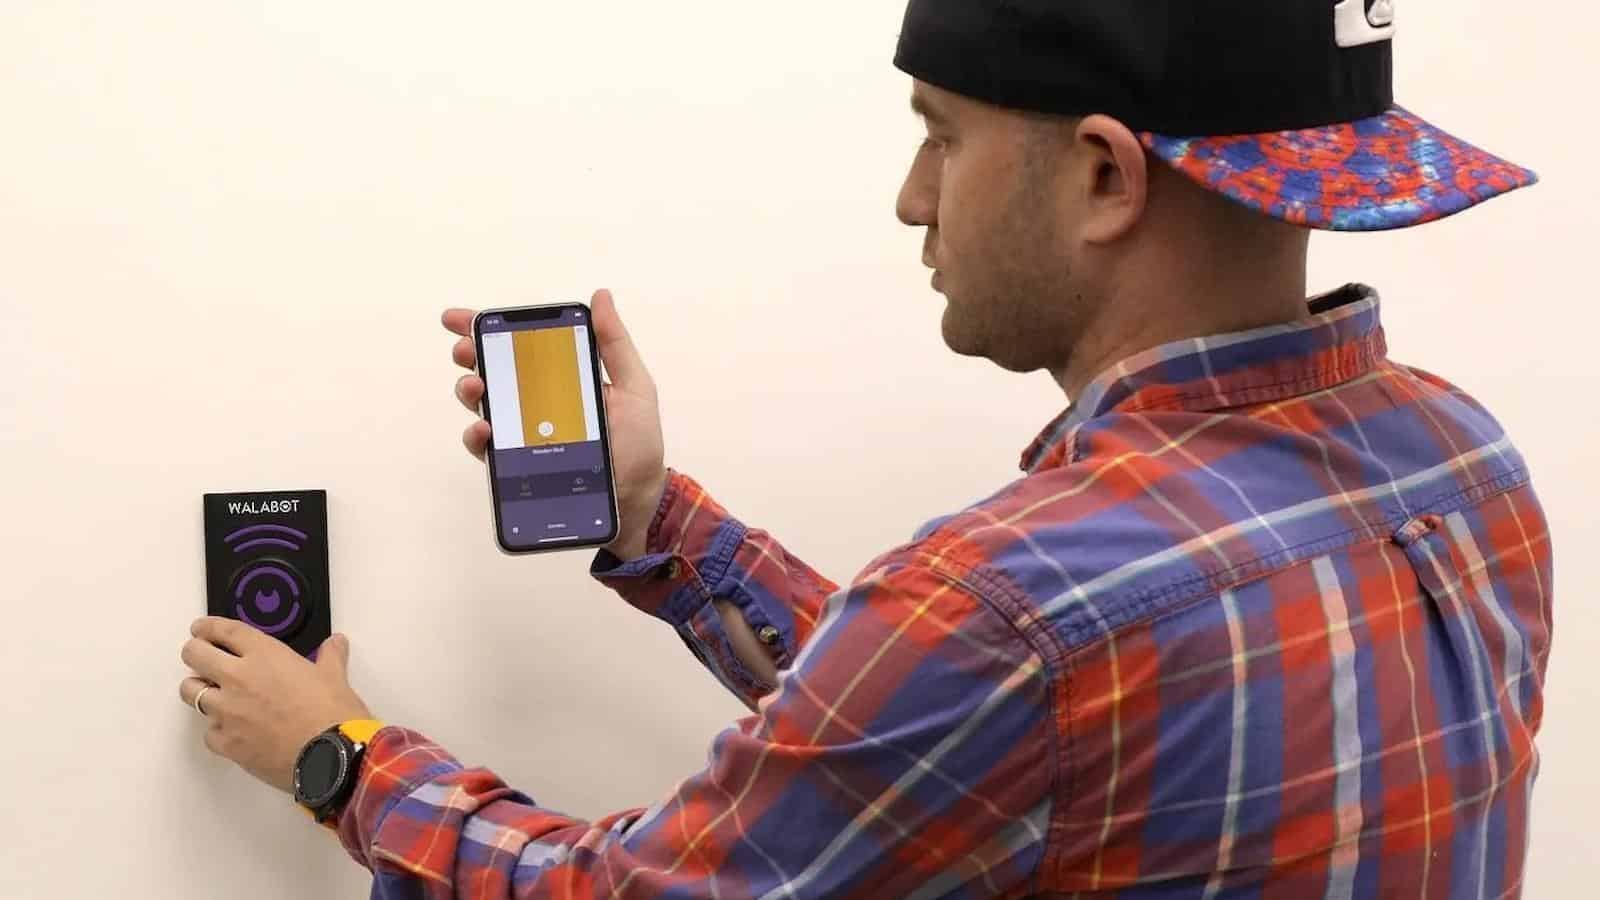 walabot diy 2 stud finder being used by a man in a baseball cap to find pipes inside a wall